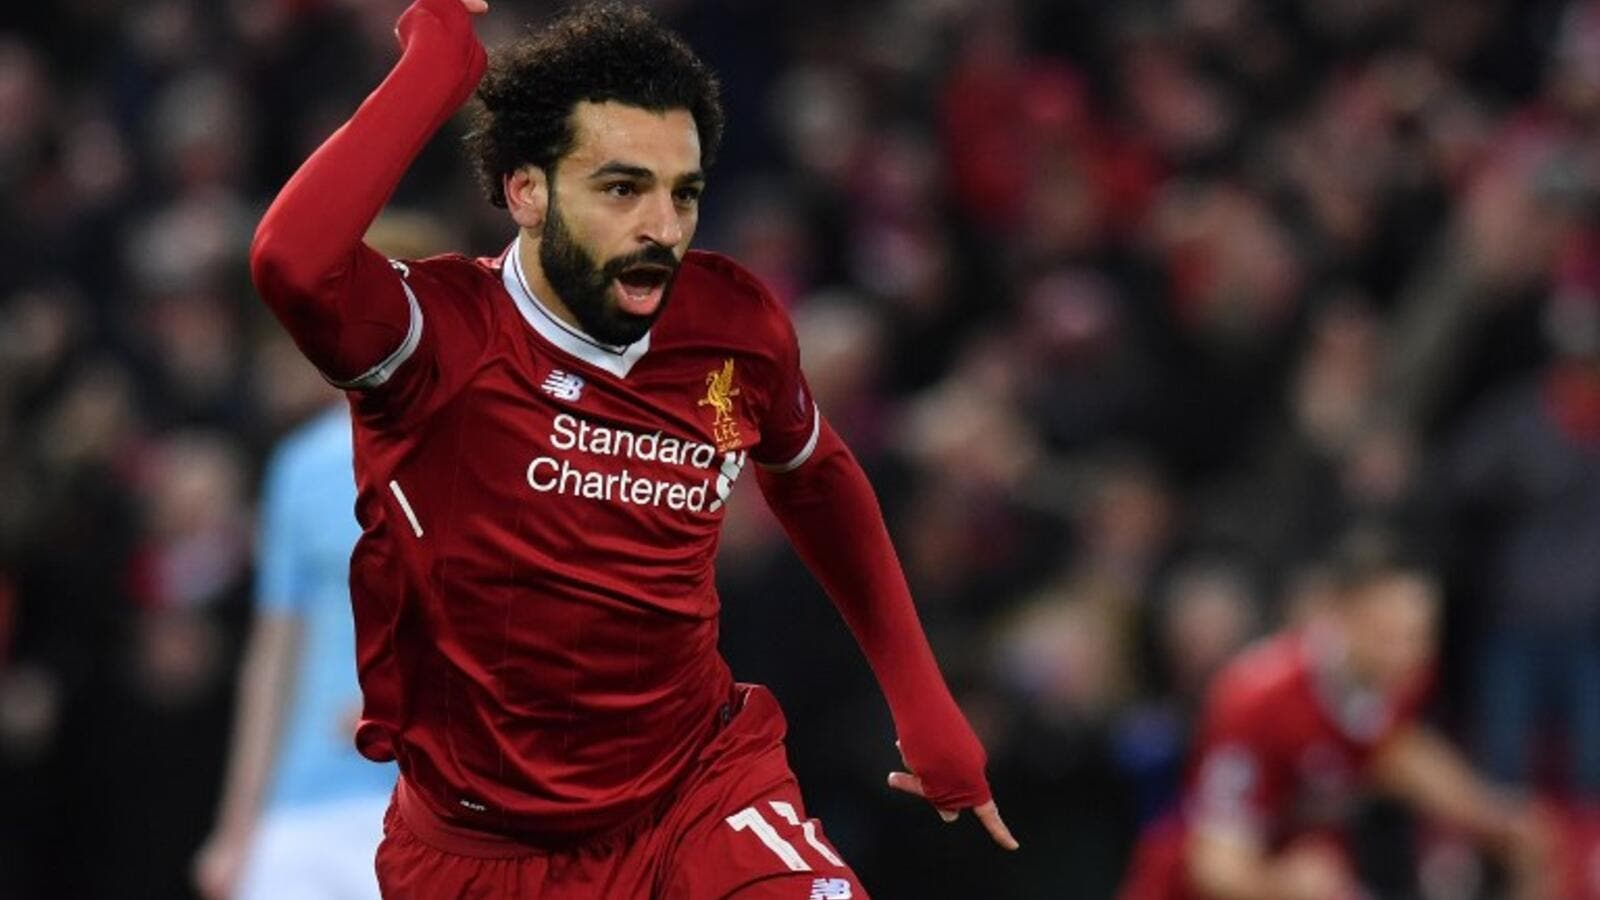 Spanish football clubs Real Madrid  and Barcelona have cooled down their interest in signing Liverpool forward Mohamed Salah, reported English tabloid The Express.